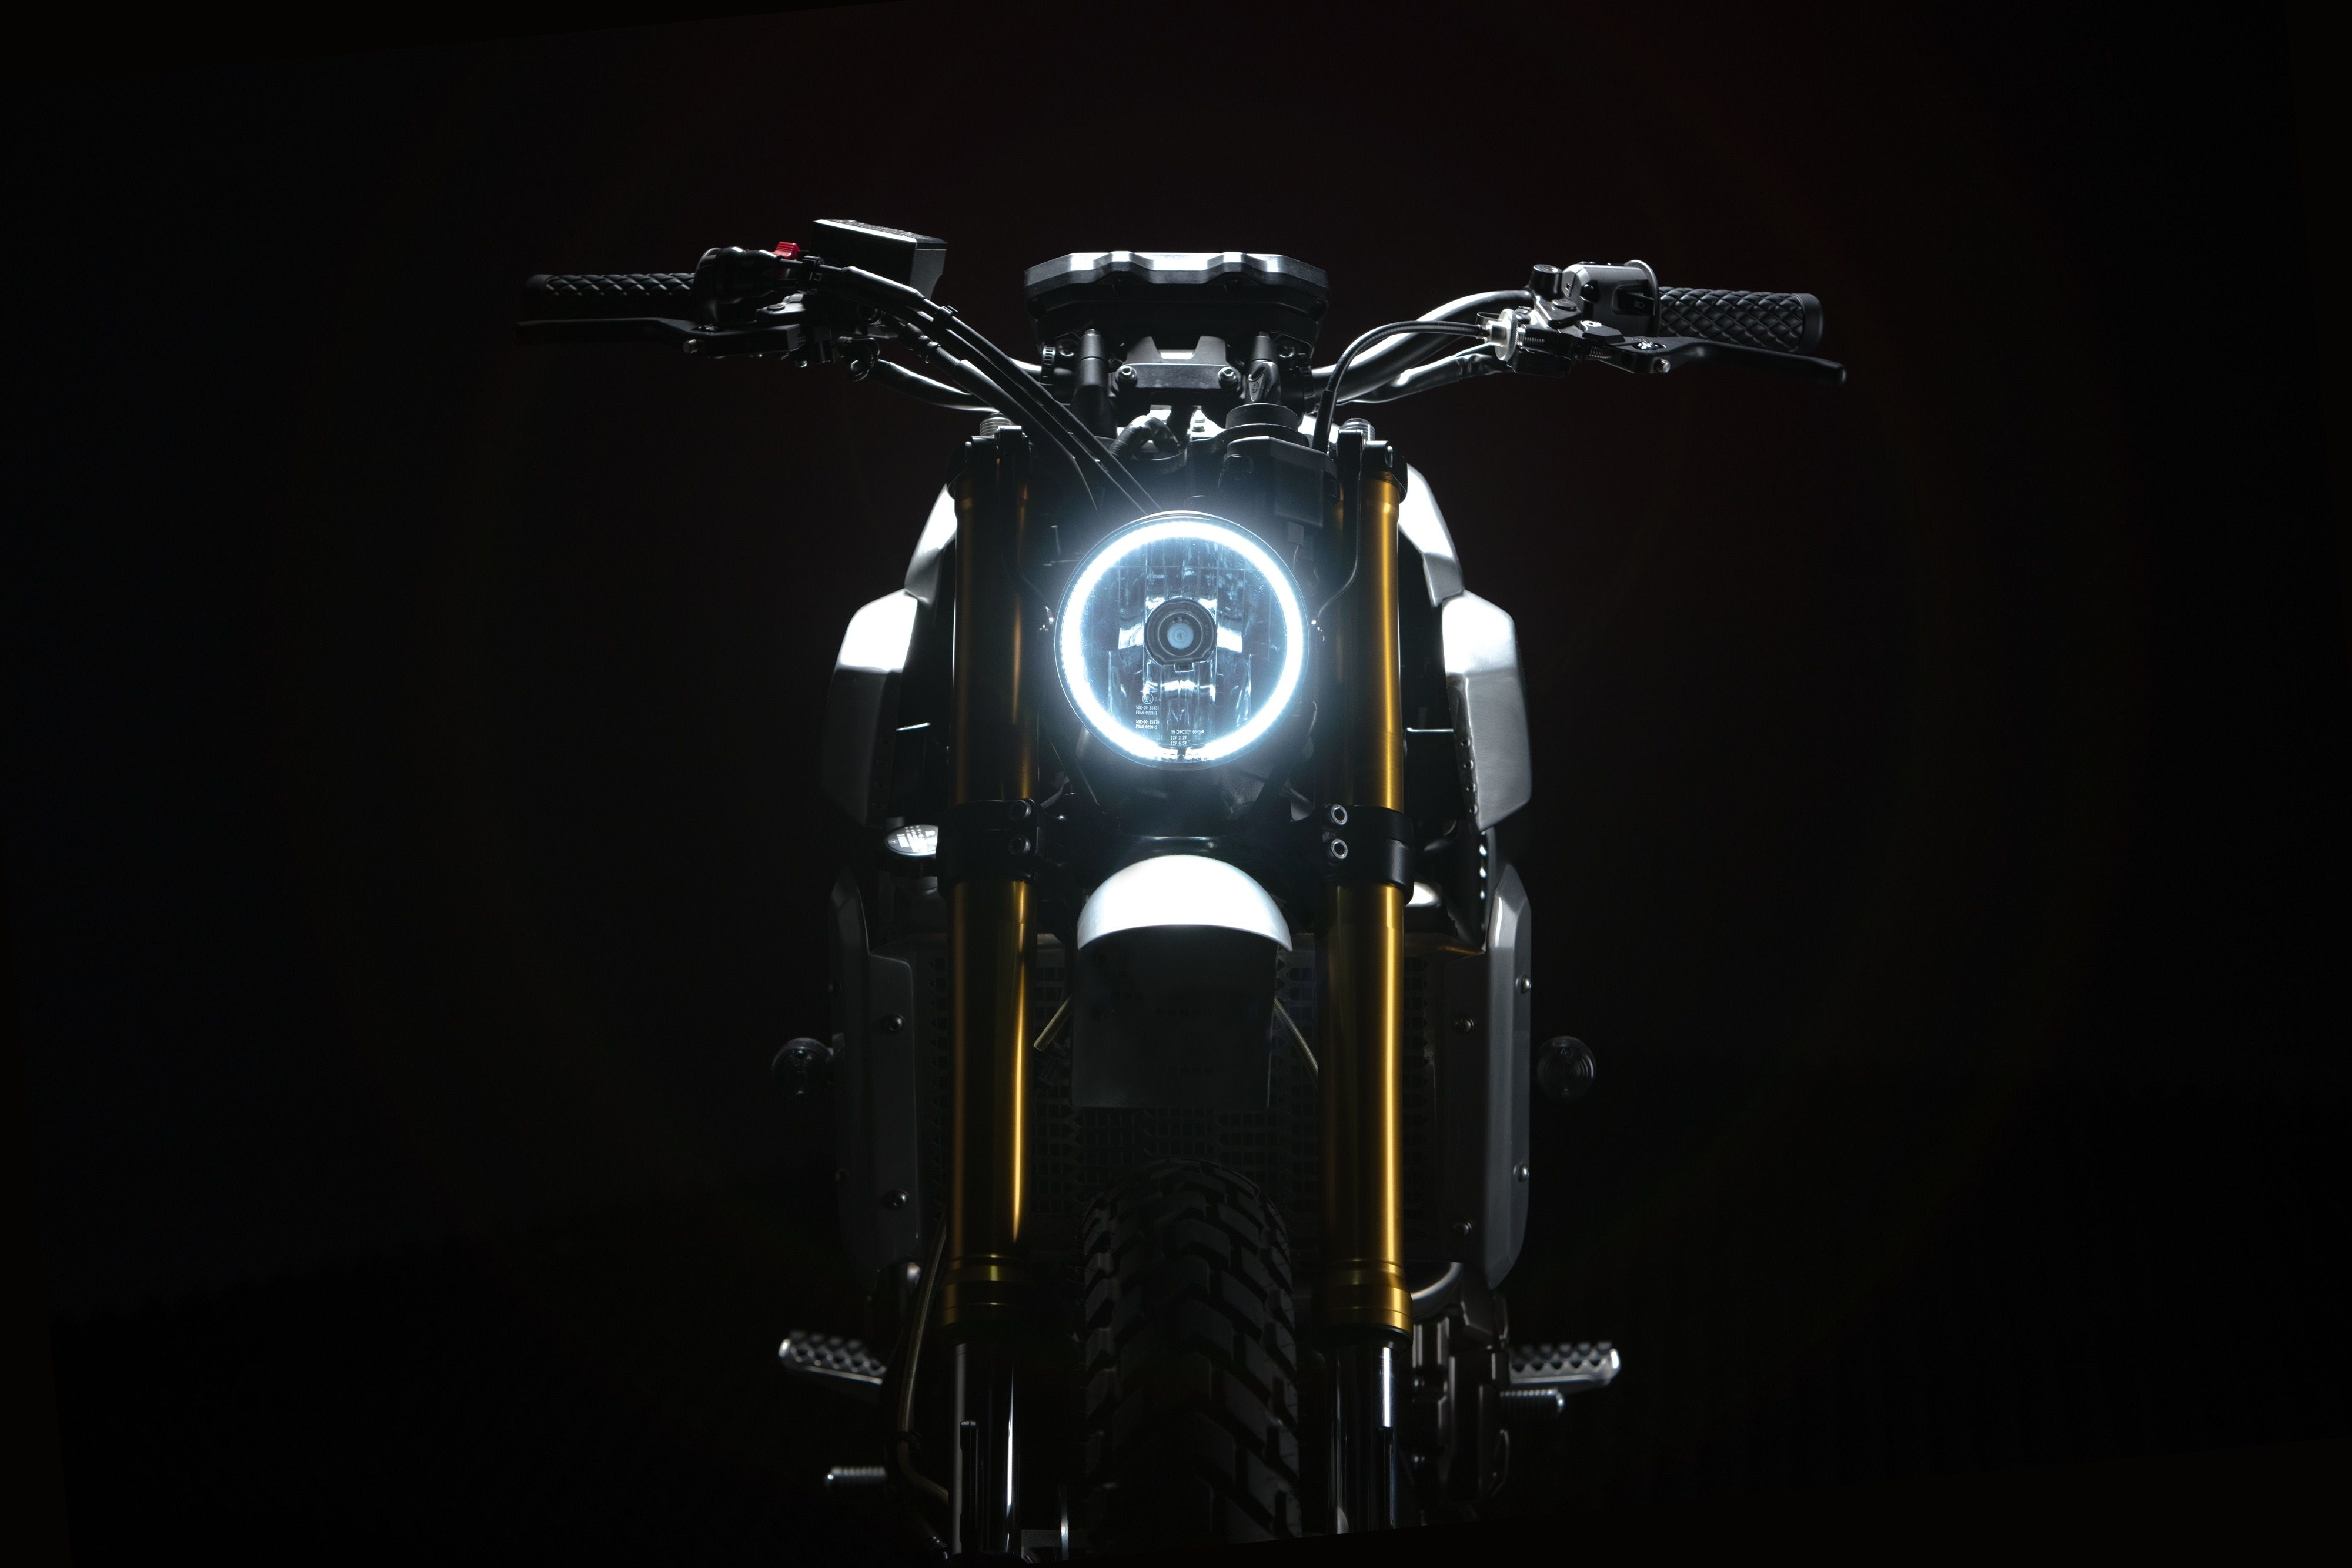 XSR700 Halo Headlamp